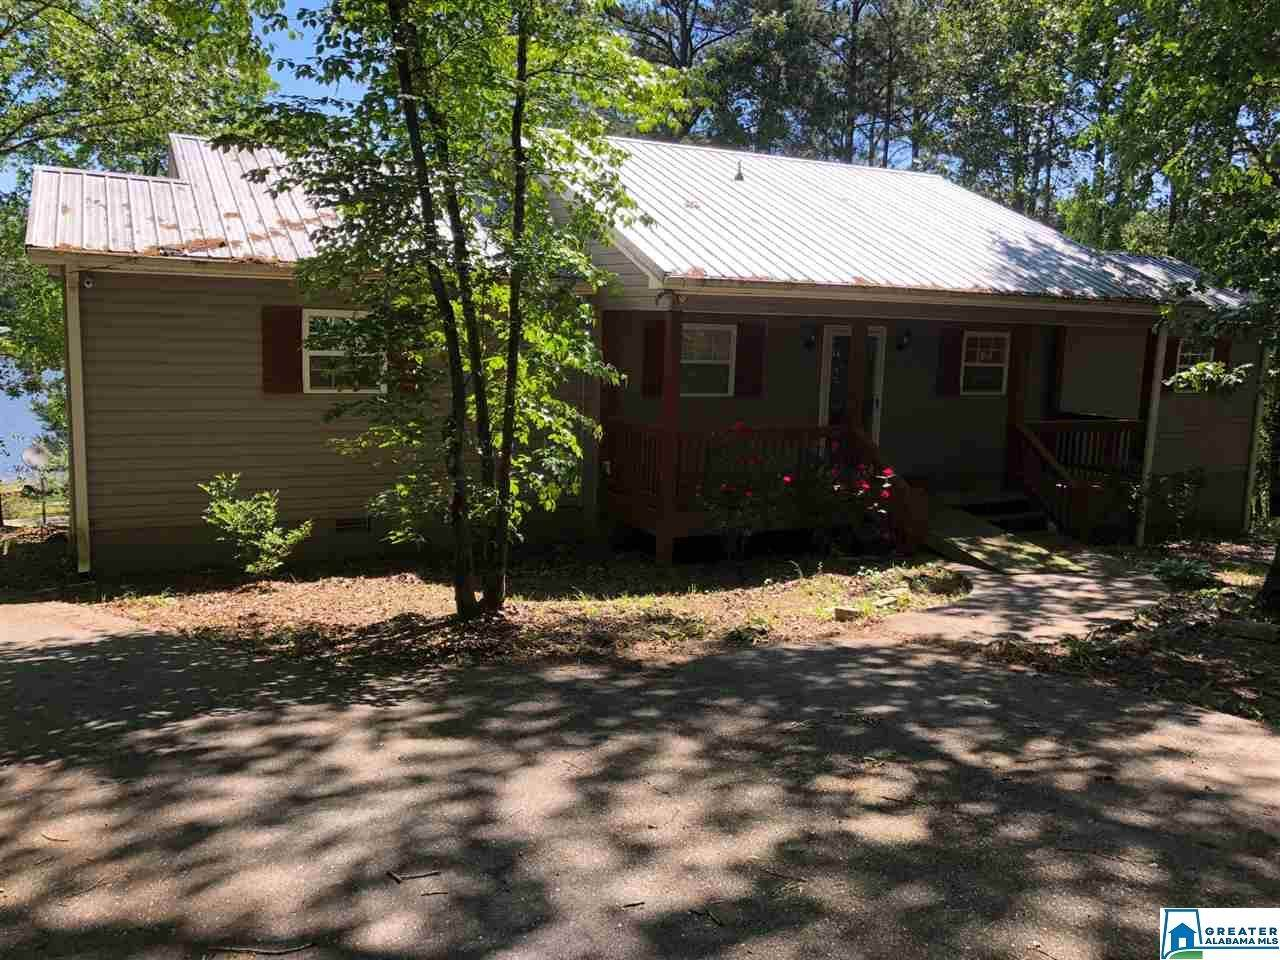 49 Satellite Dr - Photo 1